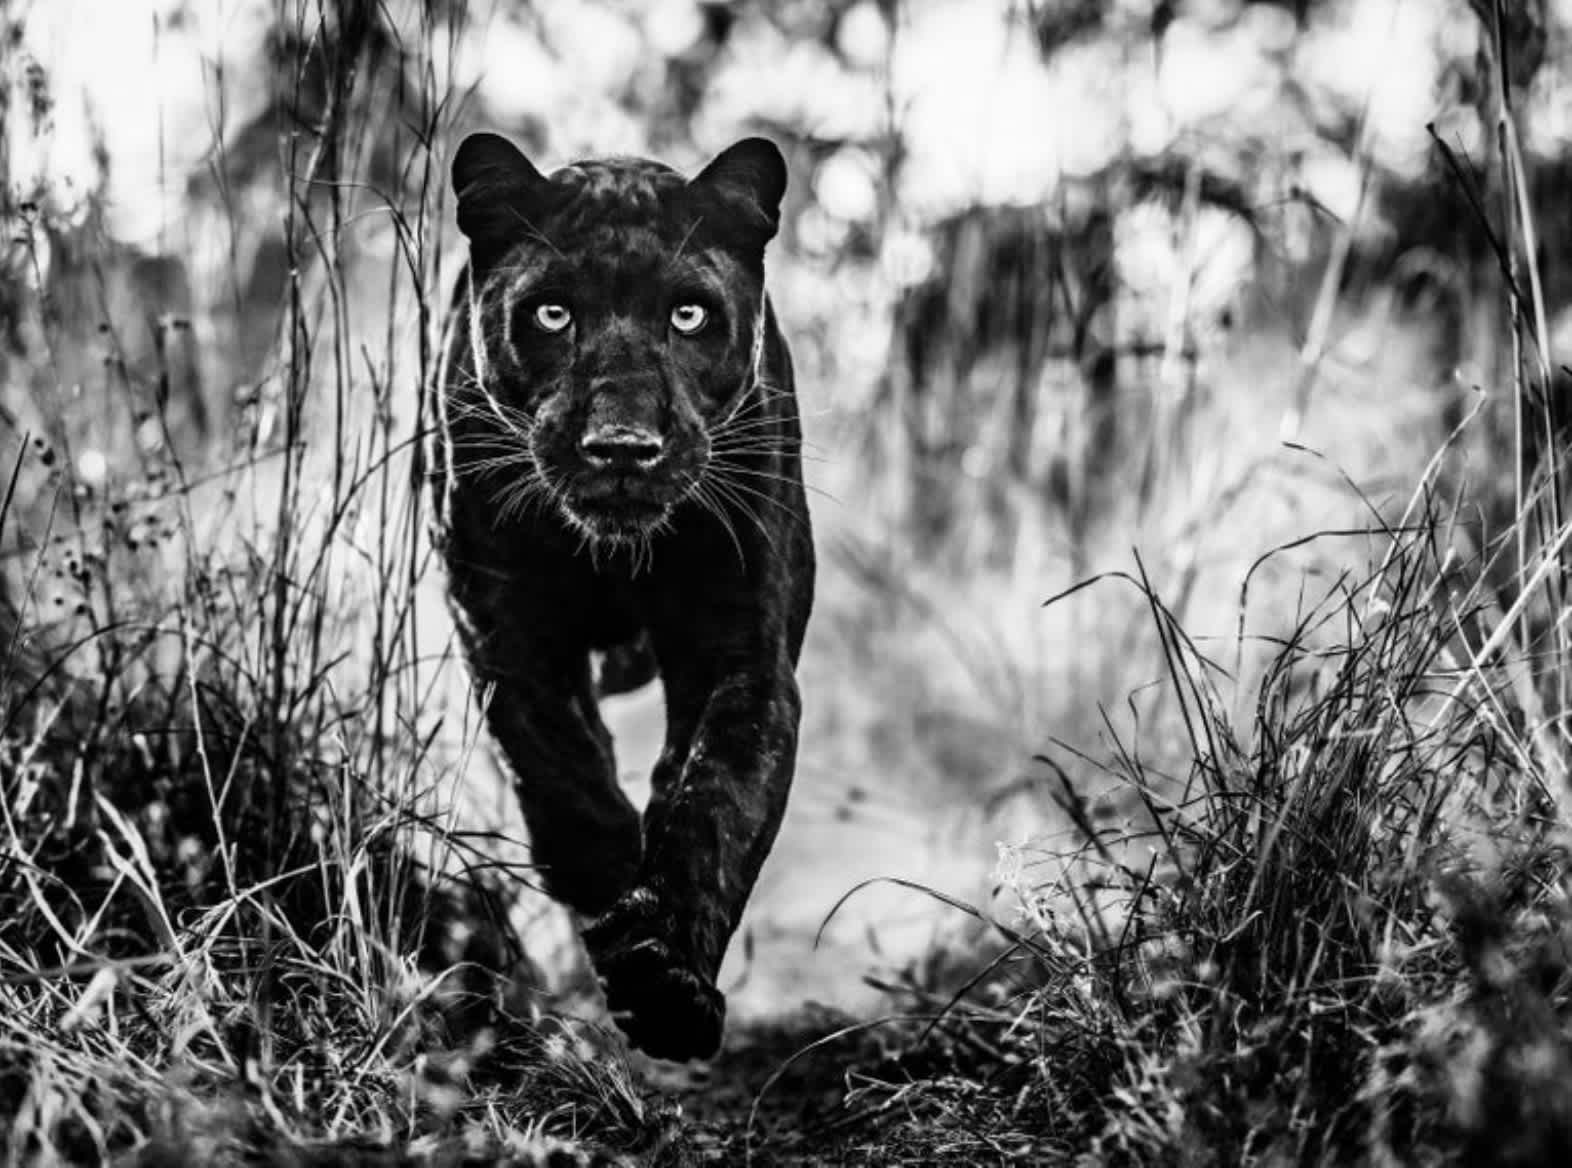 David Yarrow The Black Panther Returns Archival Pigment Print